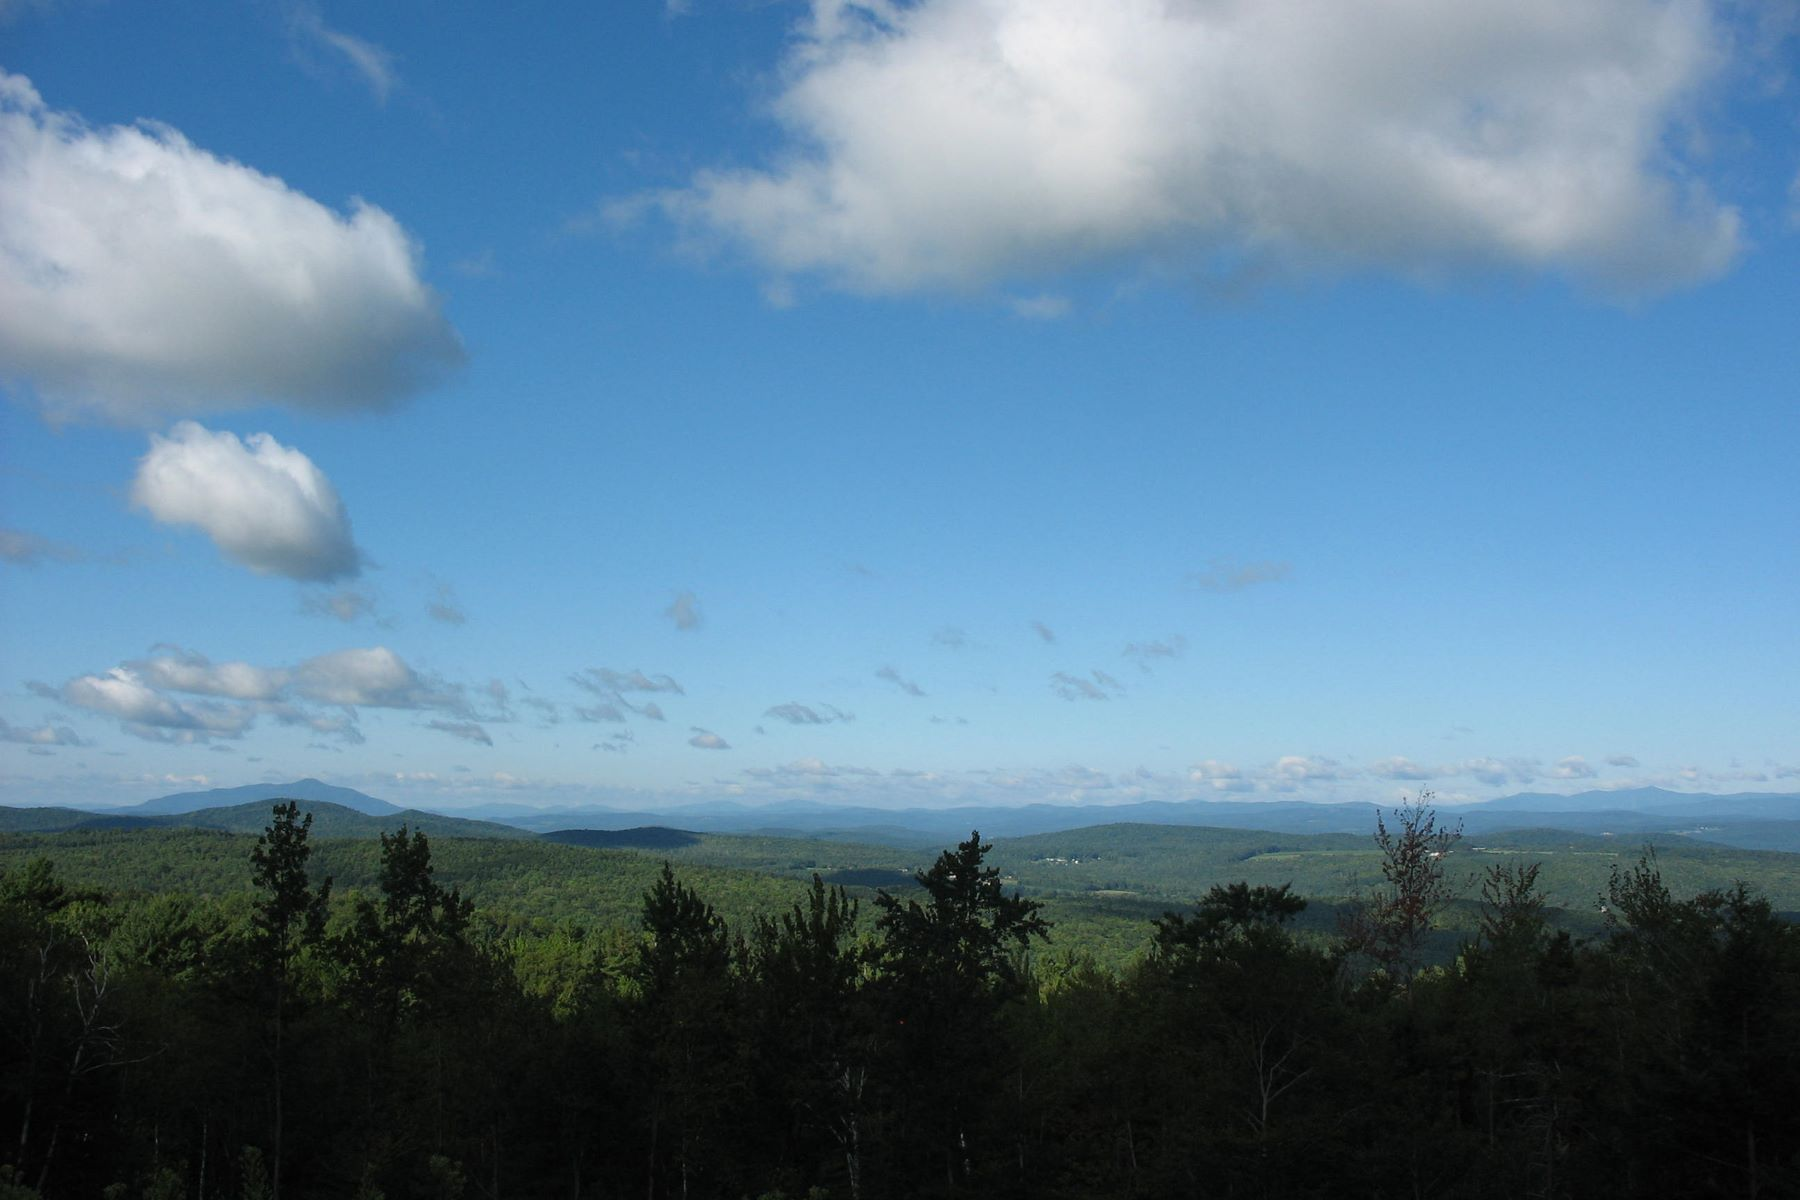 Land for Sale at 00 Eastman Hill Road, Lebanon 00 Eastman Hill Rd Lebanon, New Hampshire, 03766 United States